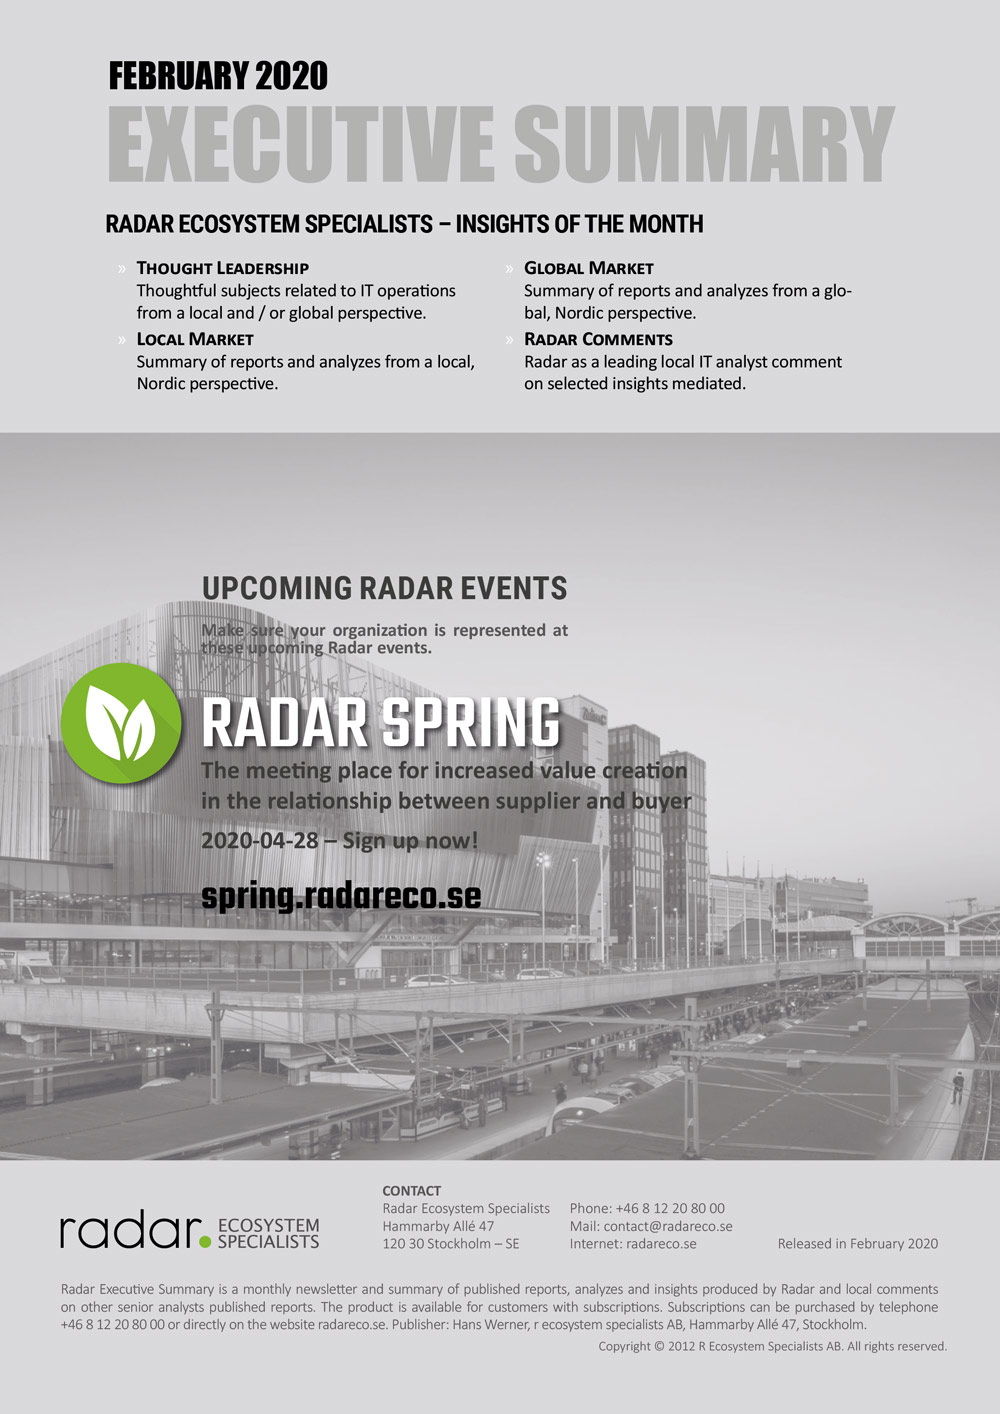 Radar Executive Summary Feb 2020